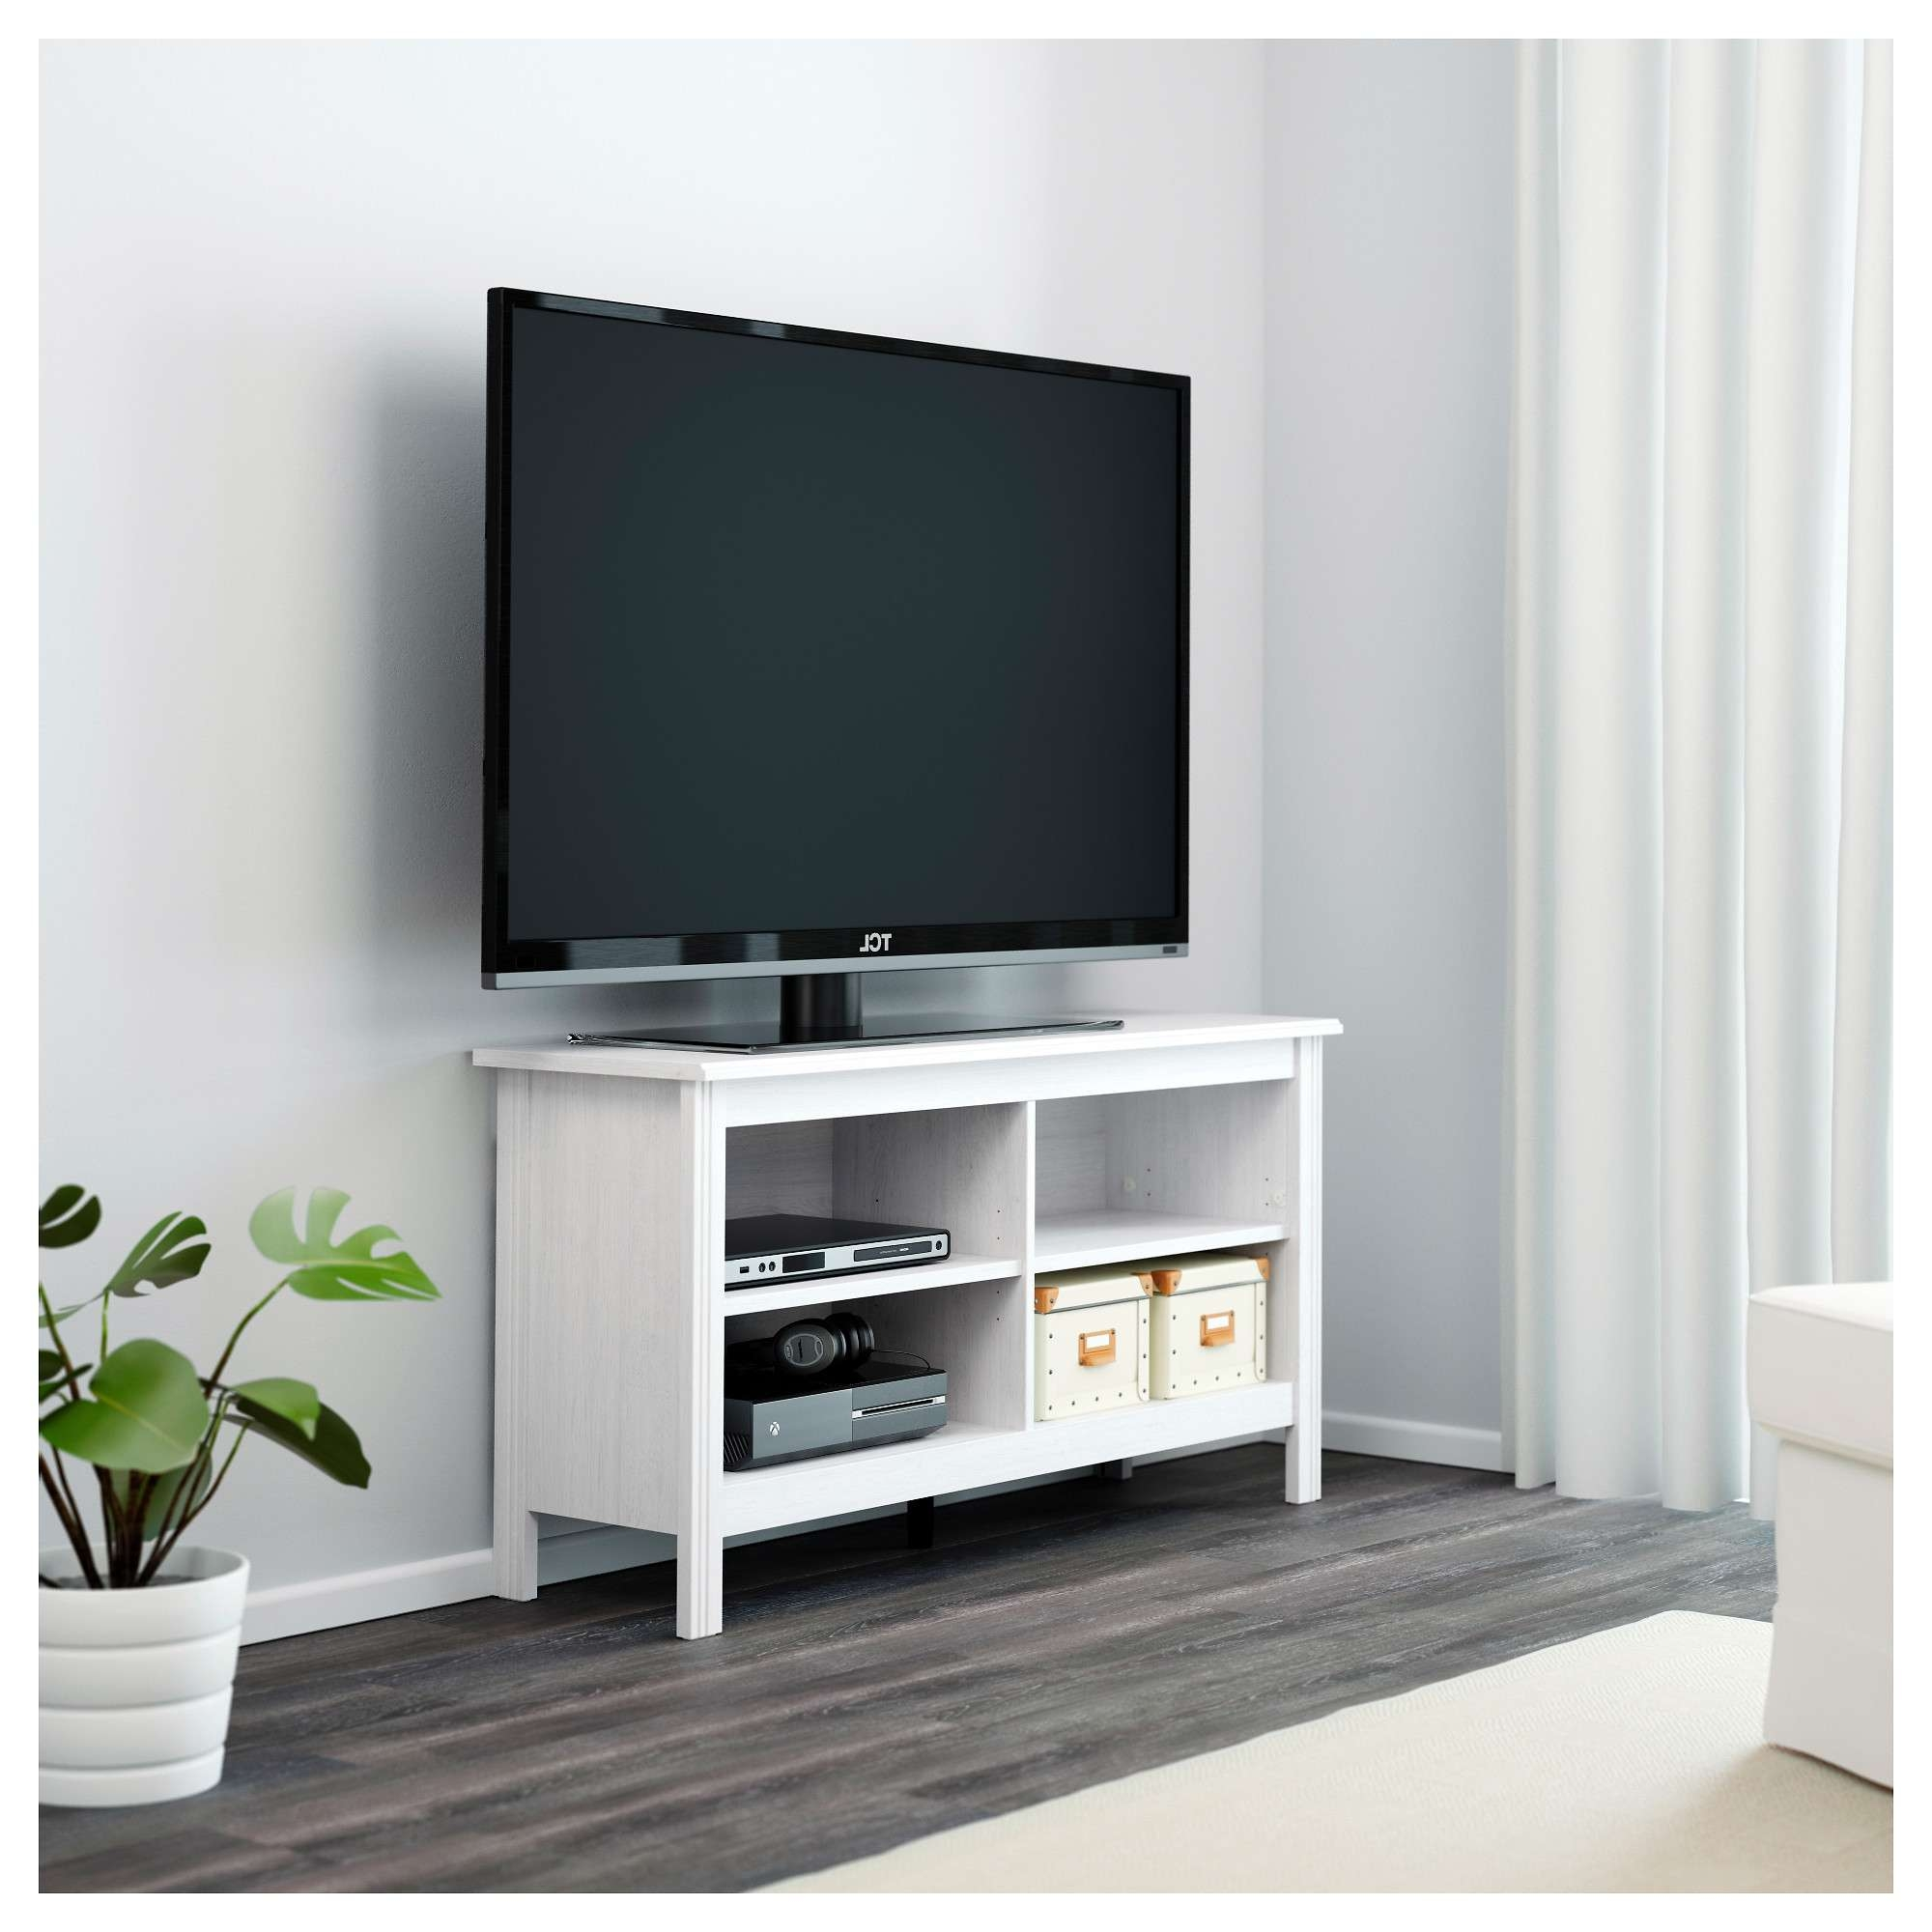 Interior : Appealing Shallow Tv Stand Expand Furniture And Small For Small White Tv Stands (View 6 of 15)